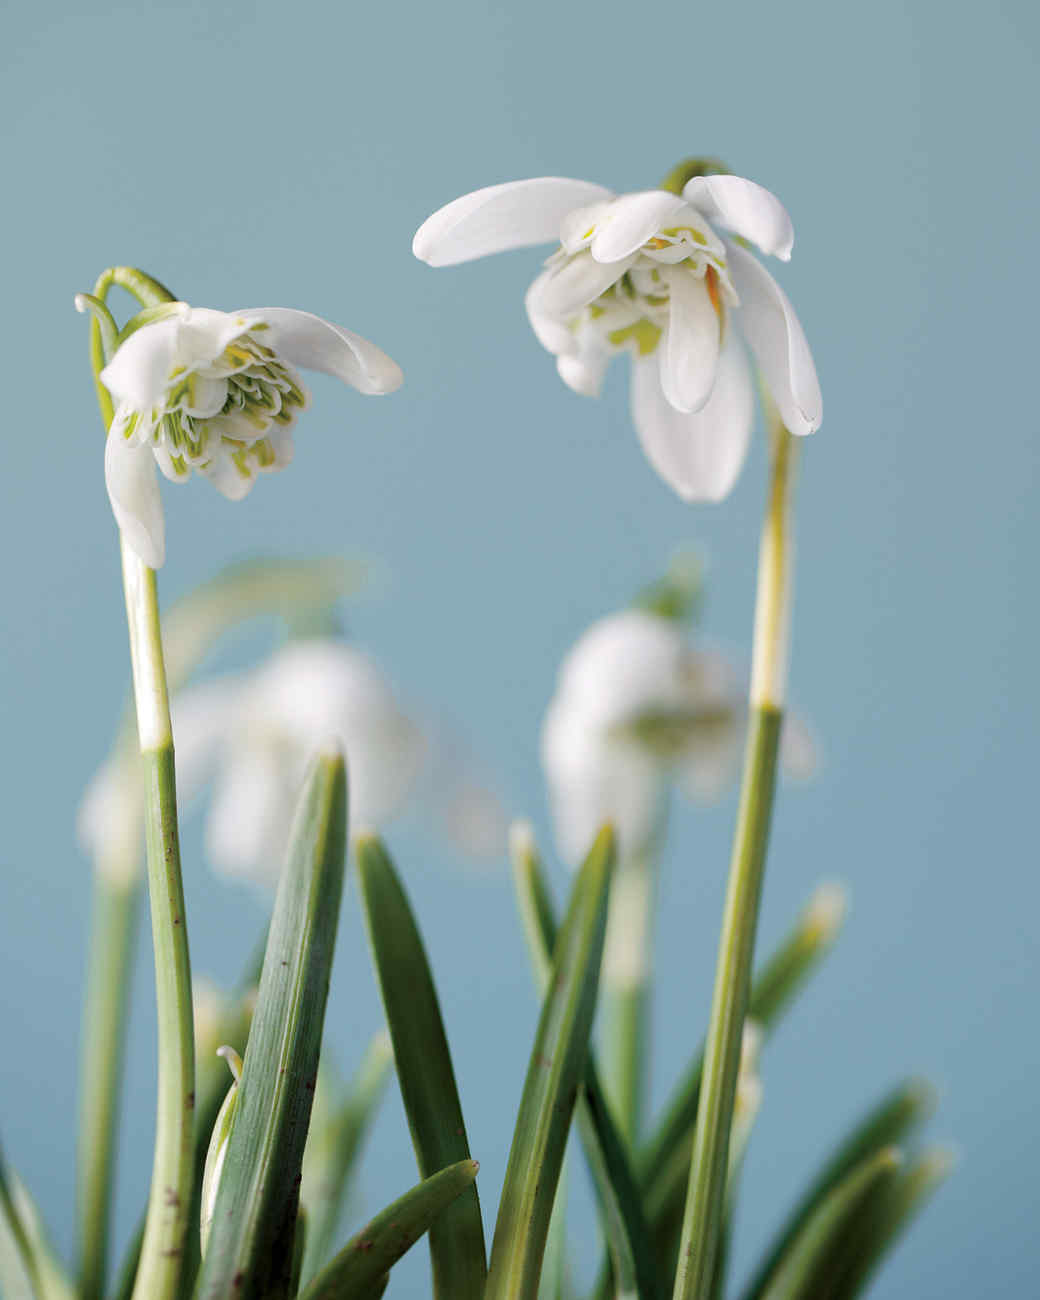 snowdrops-double-petaled-mld107313.jpg